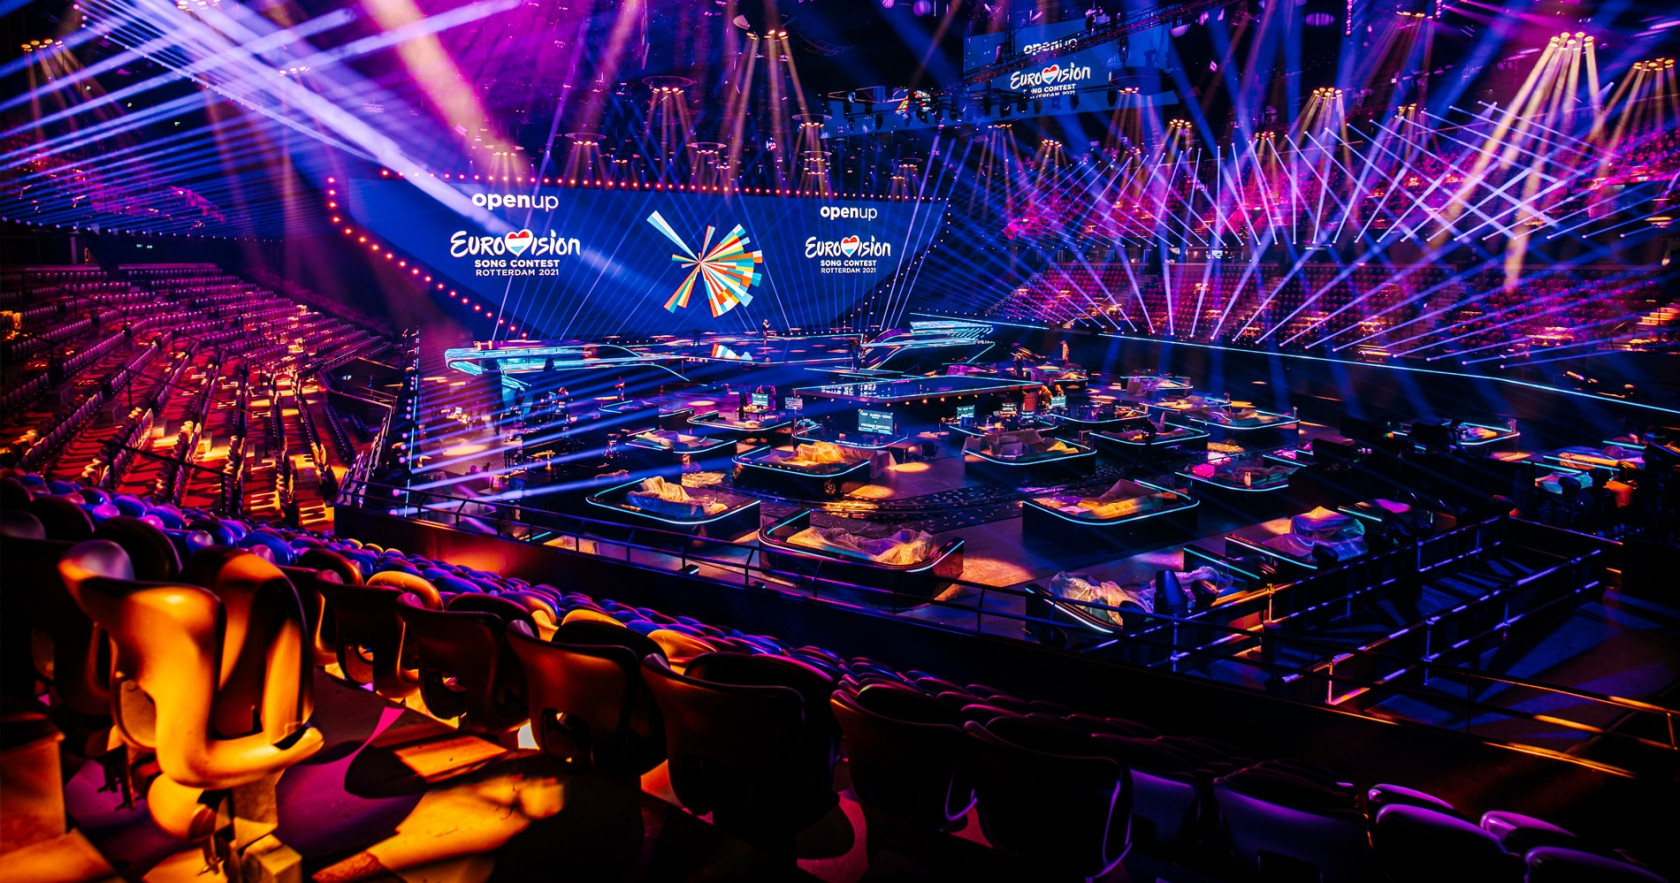 Eurovision 2021: The Dutch goverment approves the attendance of audience in the Eurovision 2021 shows